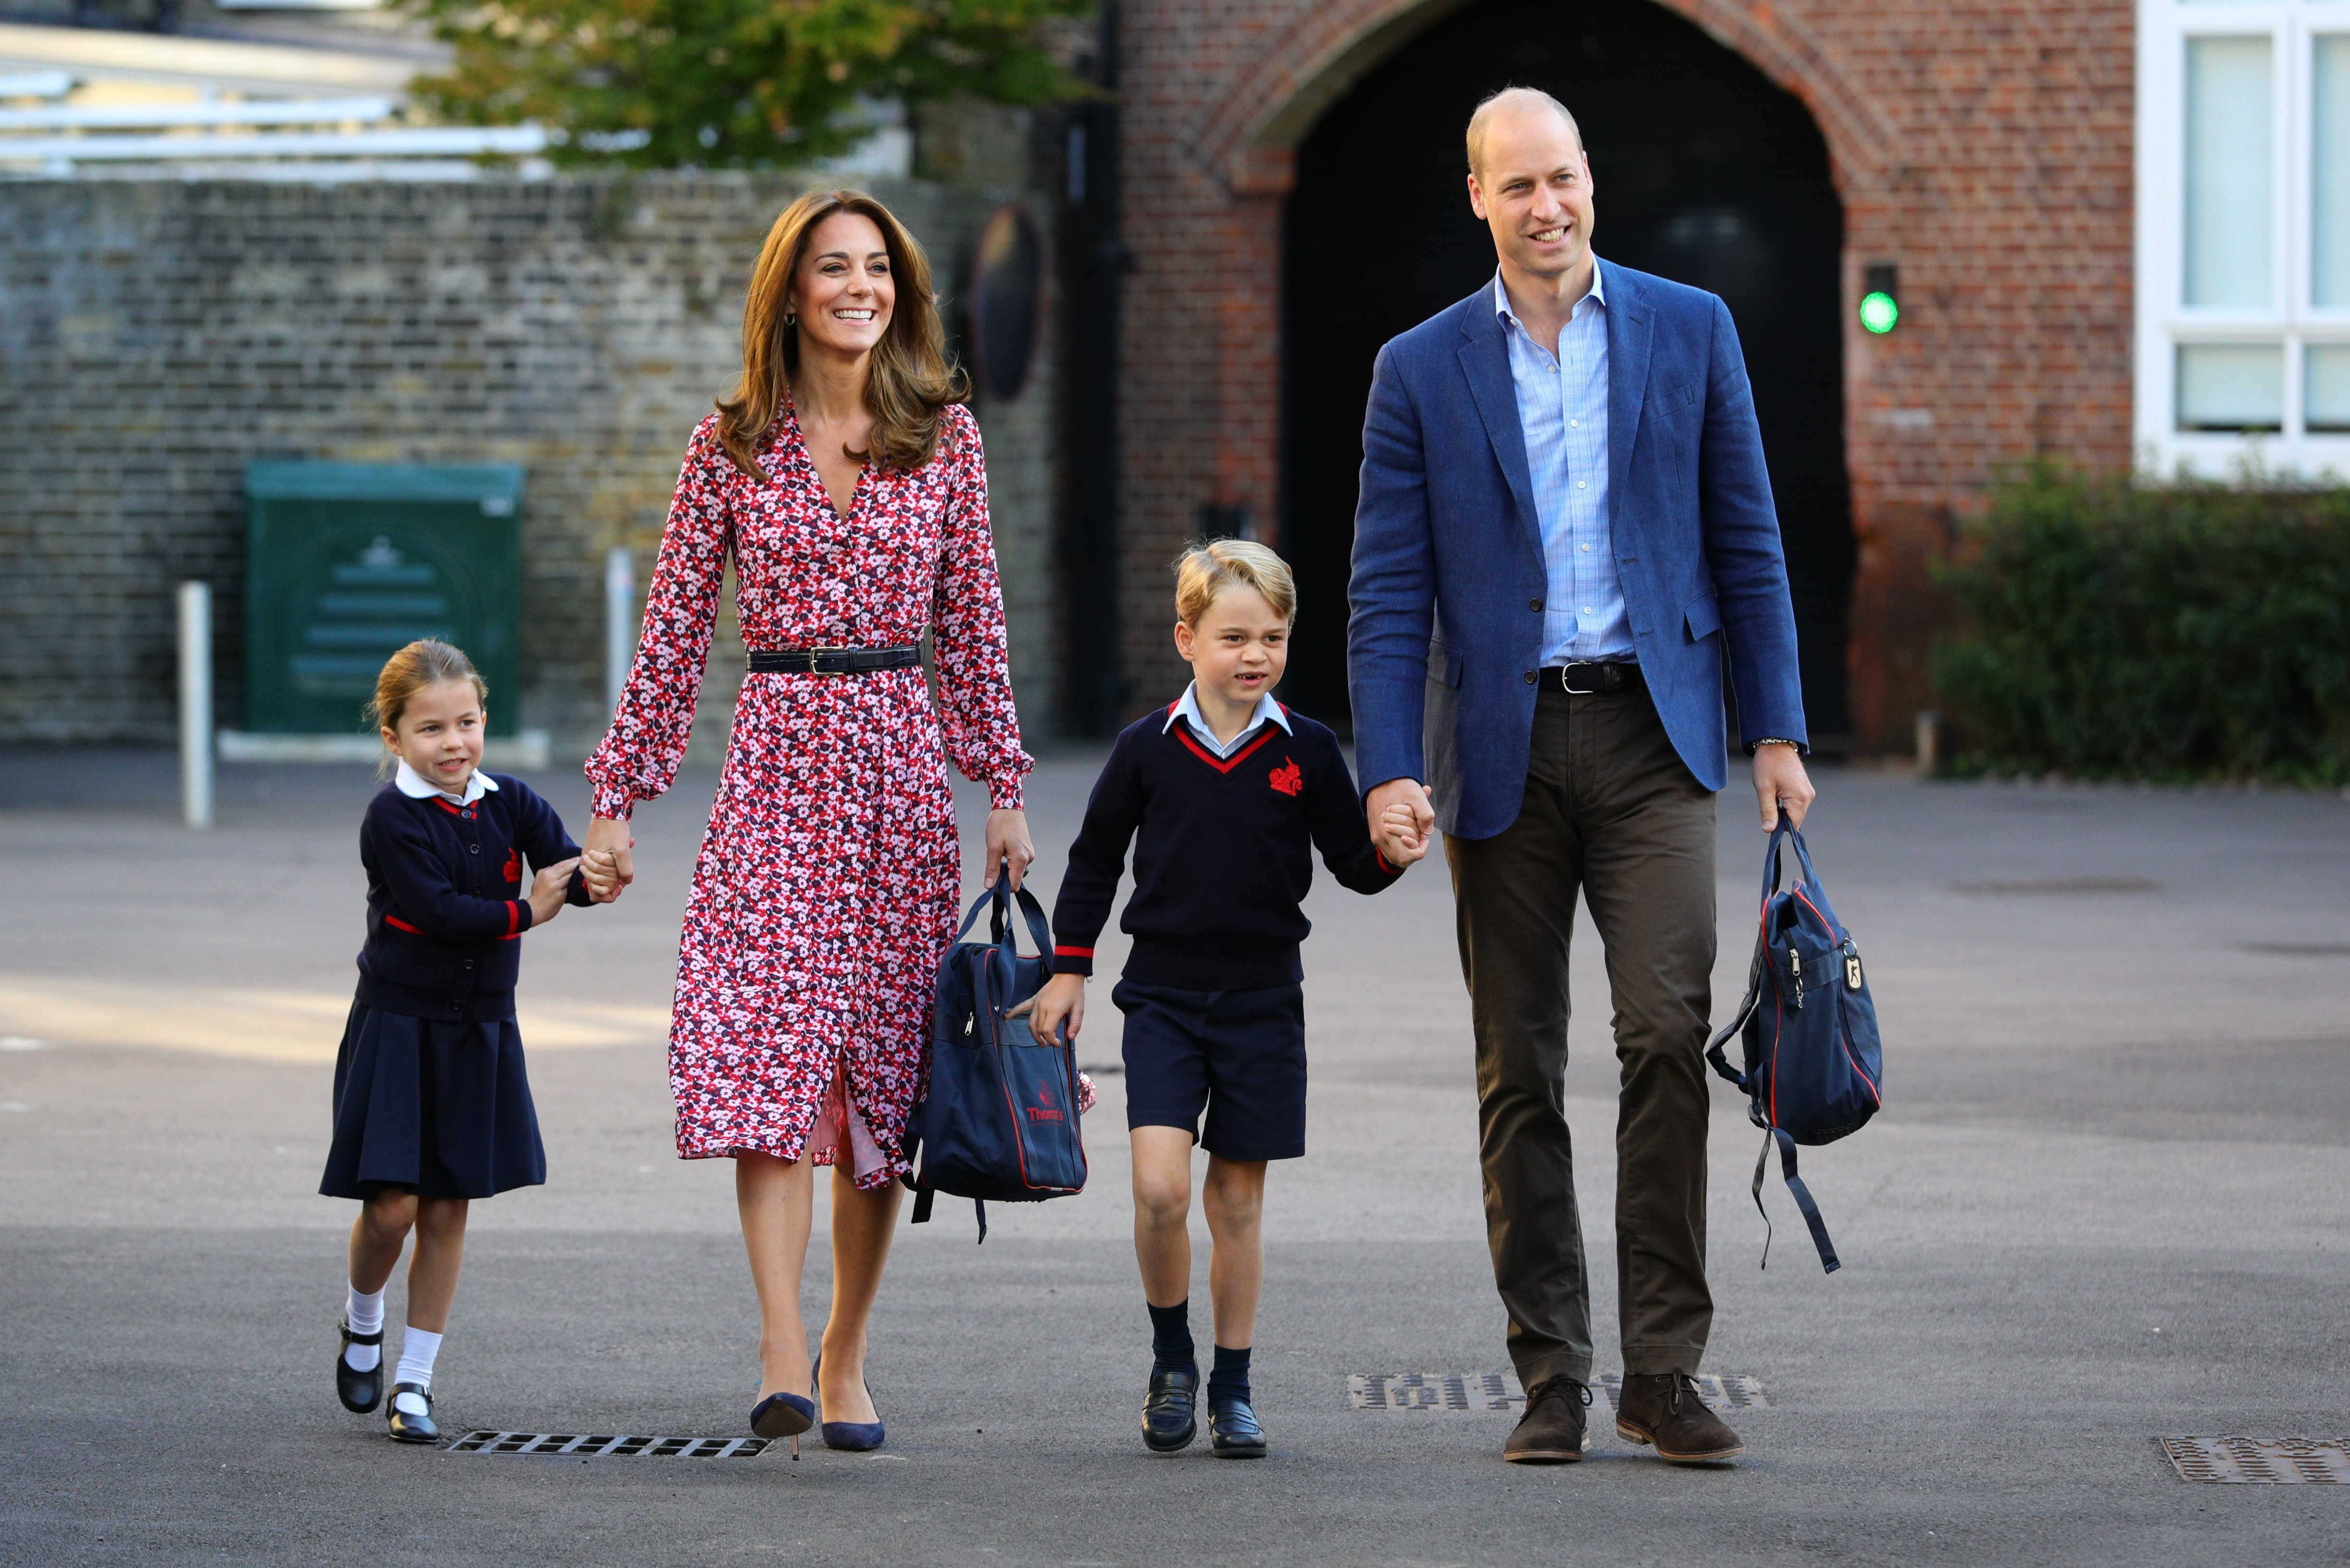 Prince William and Kate Middleton take Prince George and Princess Charlotte to school in London on September 5, 2019, in London, England. | Source: Getty Images.